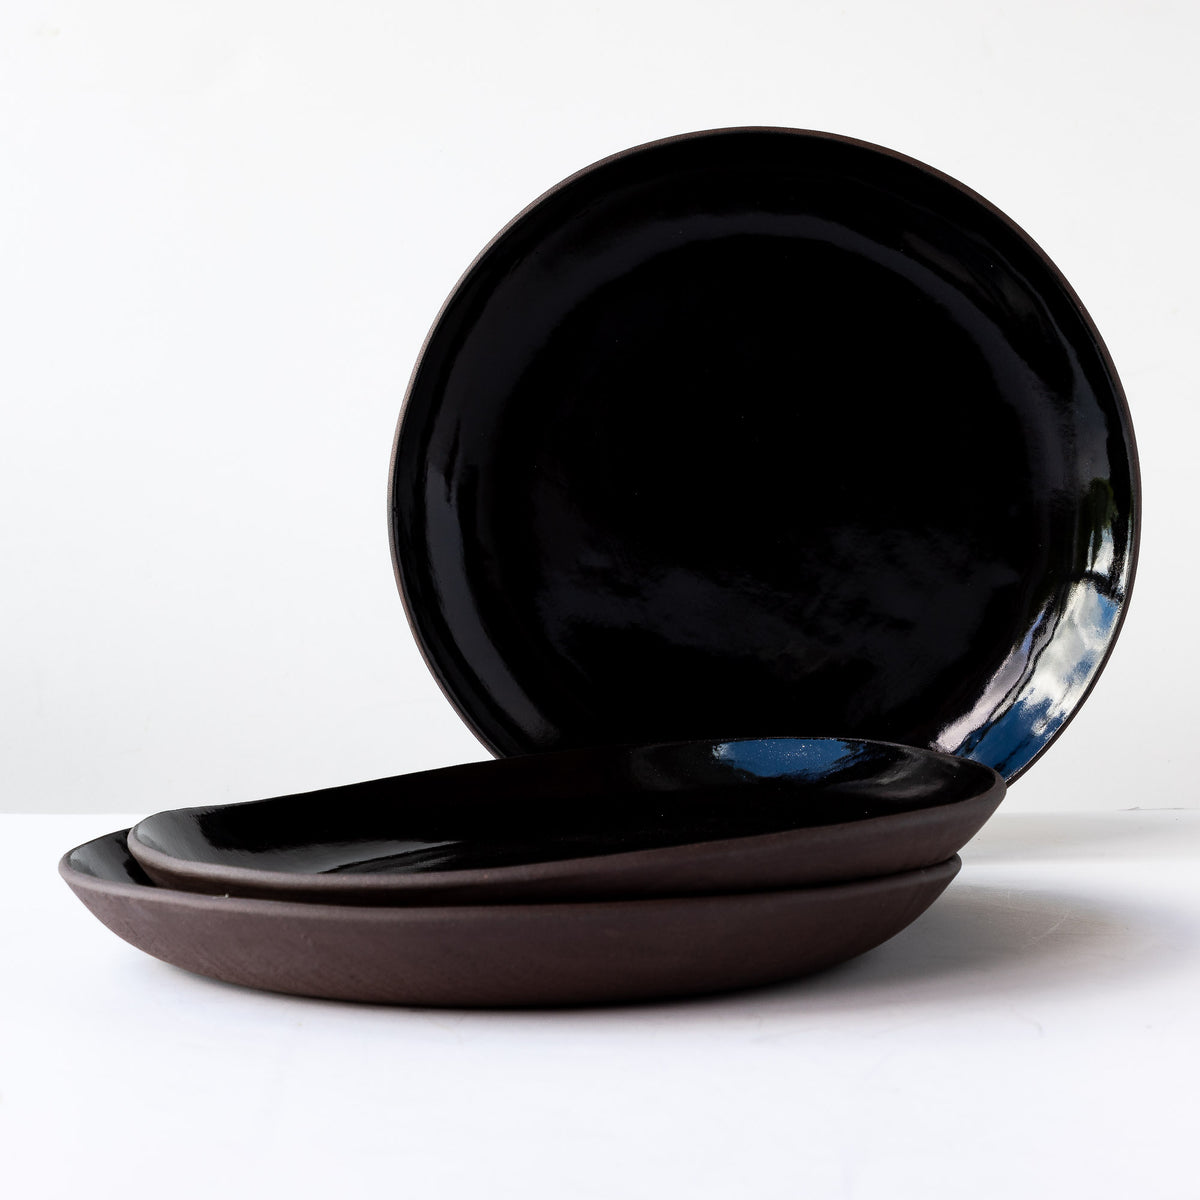 Three Handmade Large Plates in Black Lacquered Stoneware - Sold by Chic & Basta